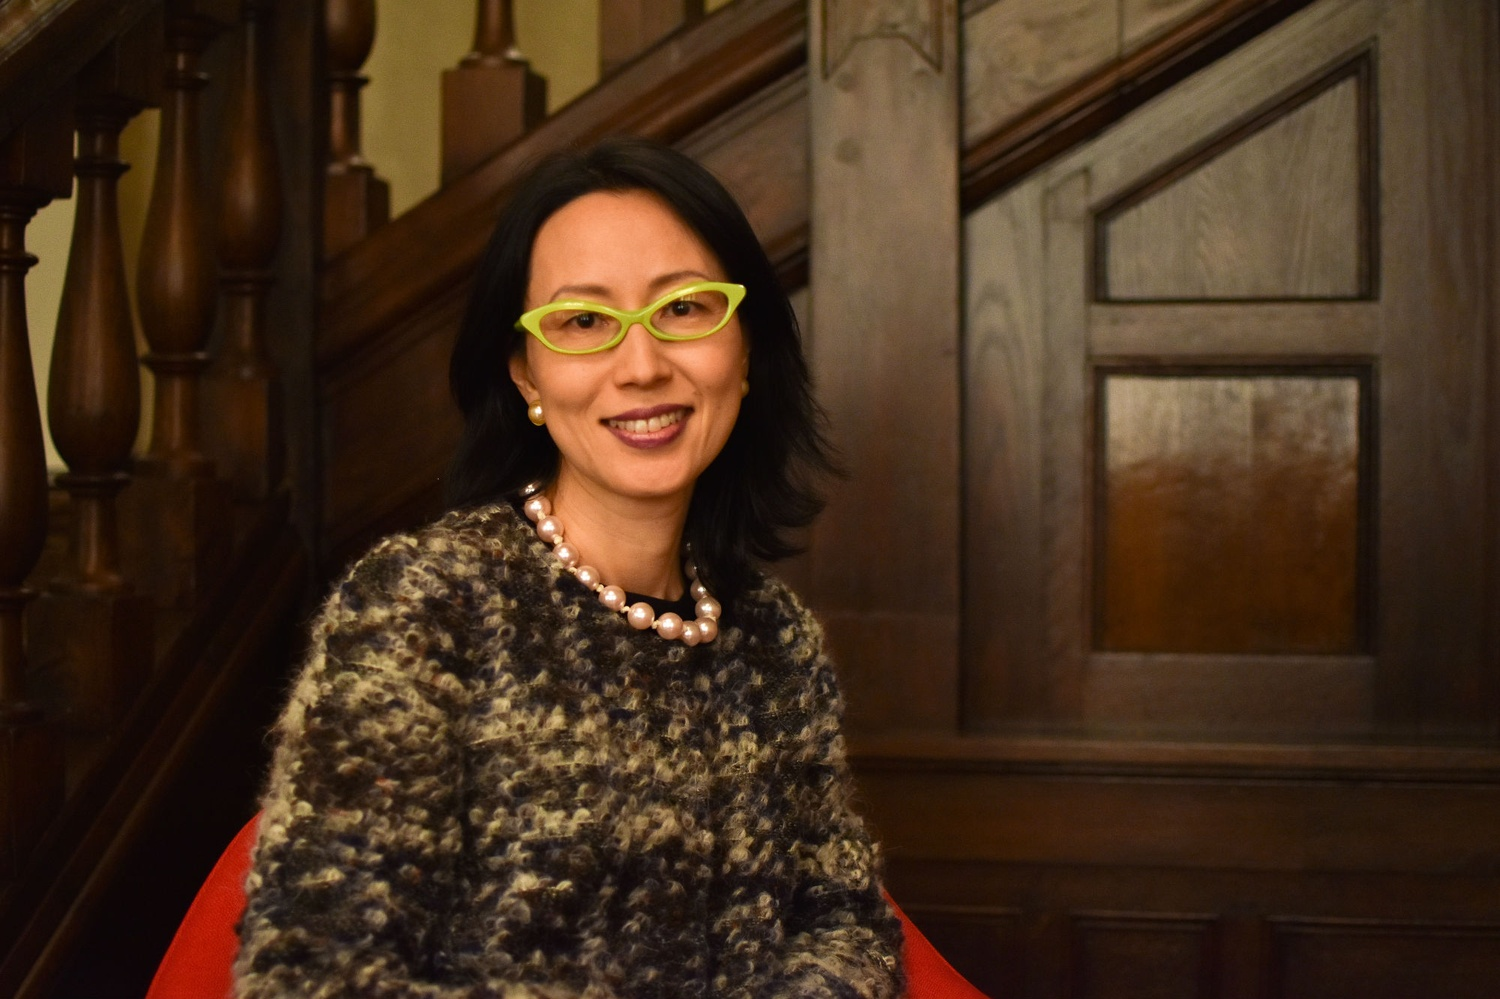 Soyoung Lee is the chief curator of the Harvard Art Museums.